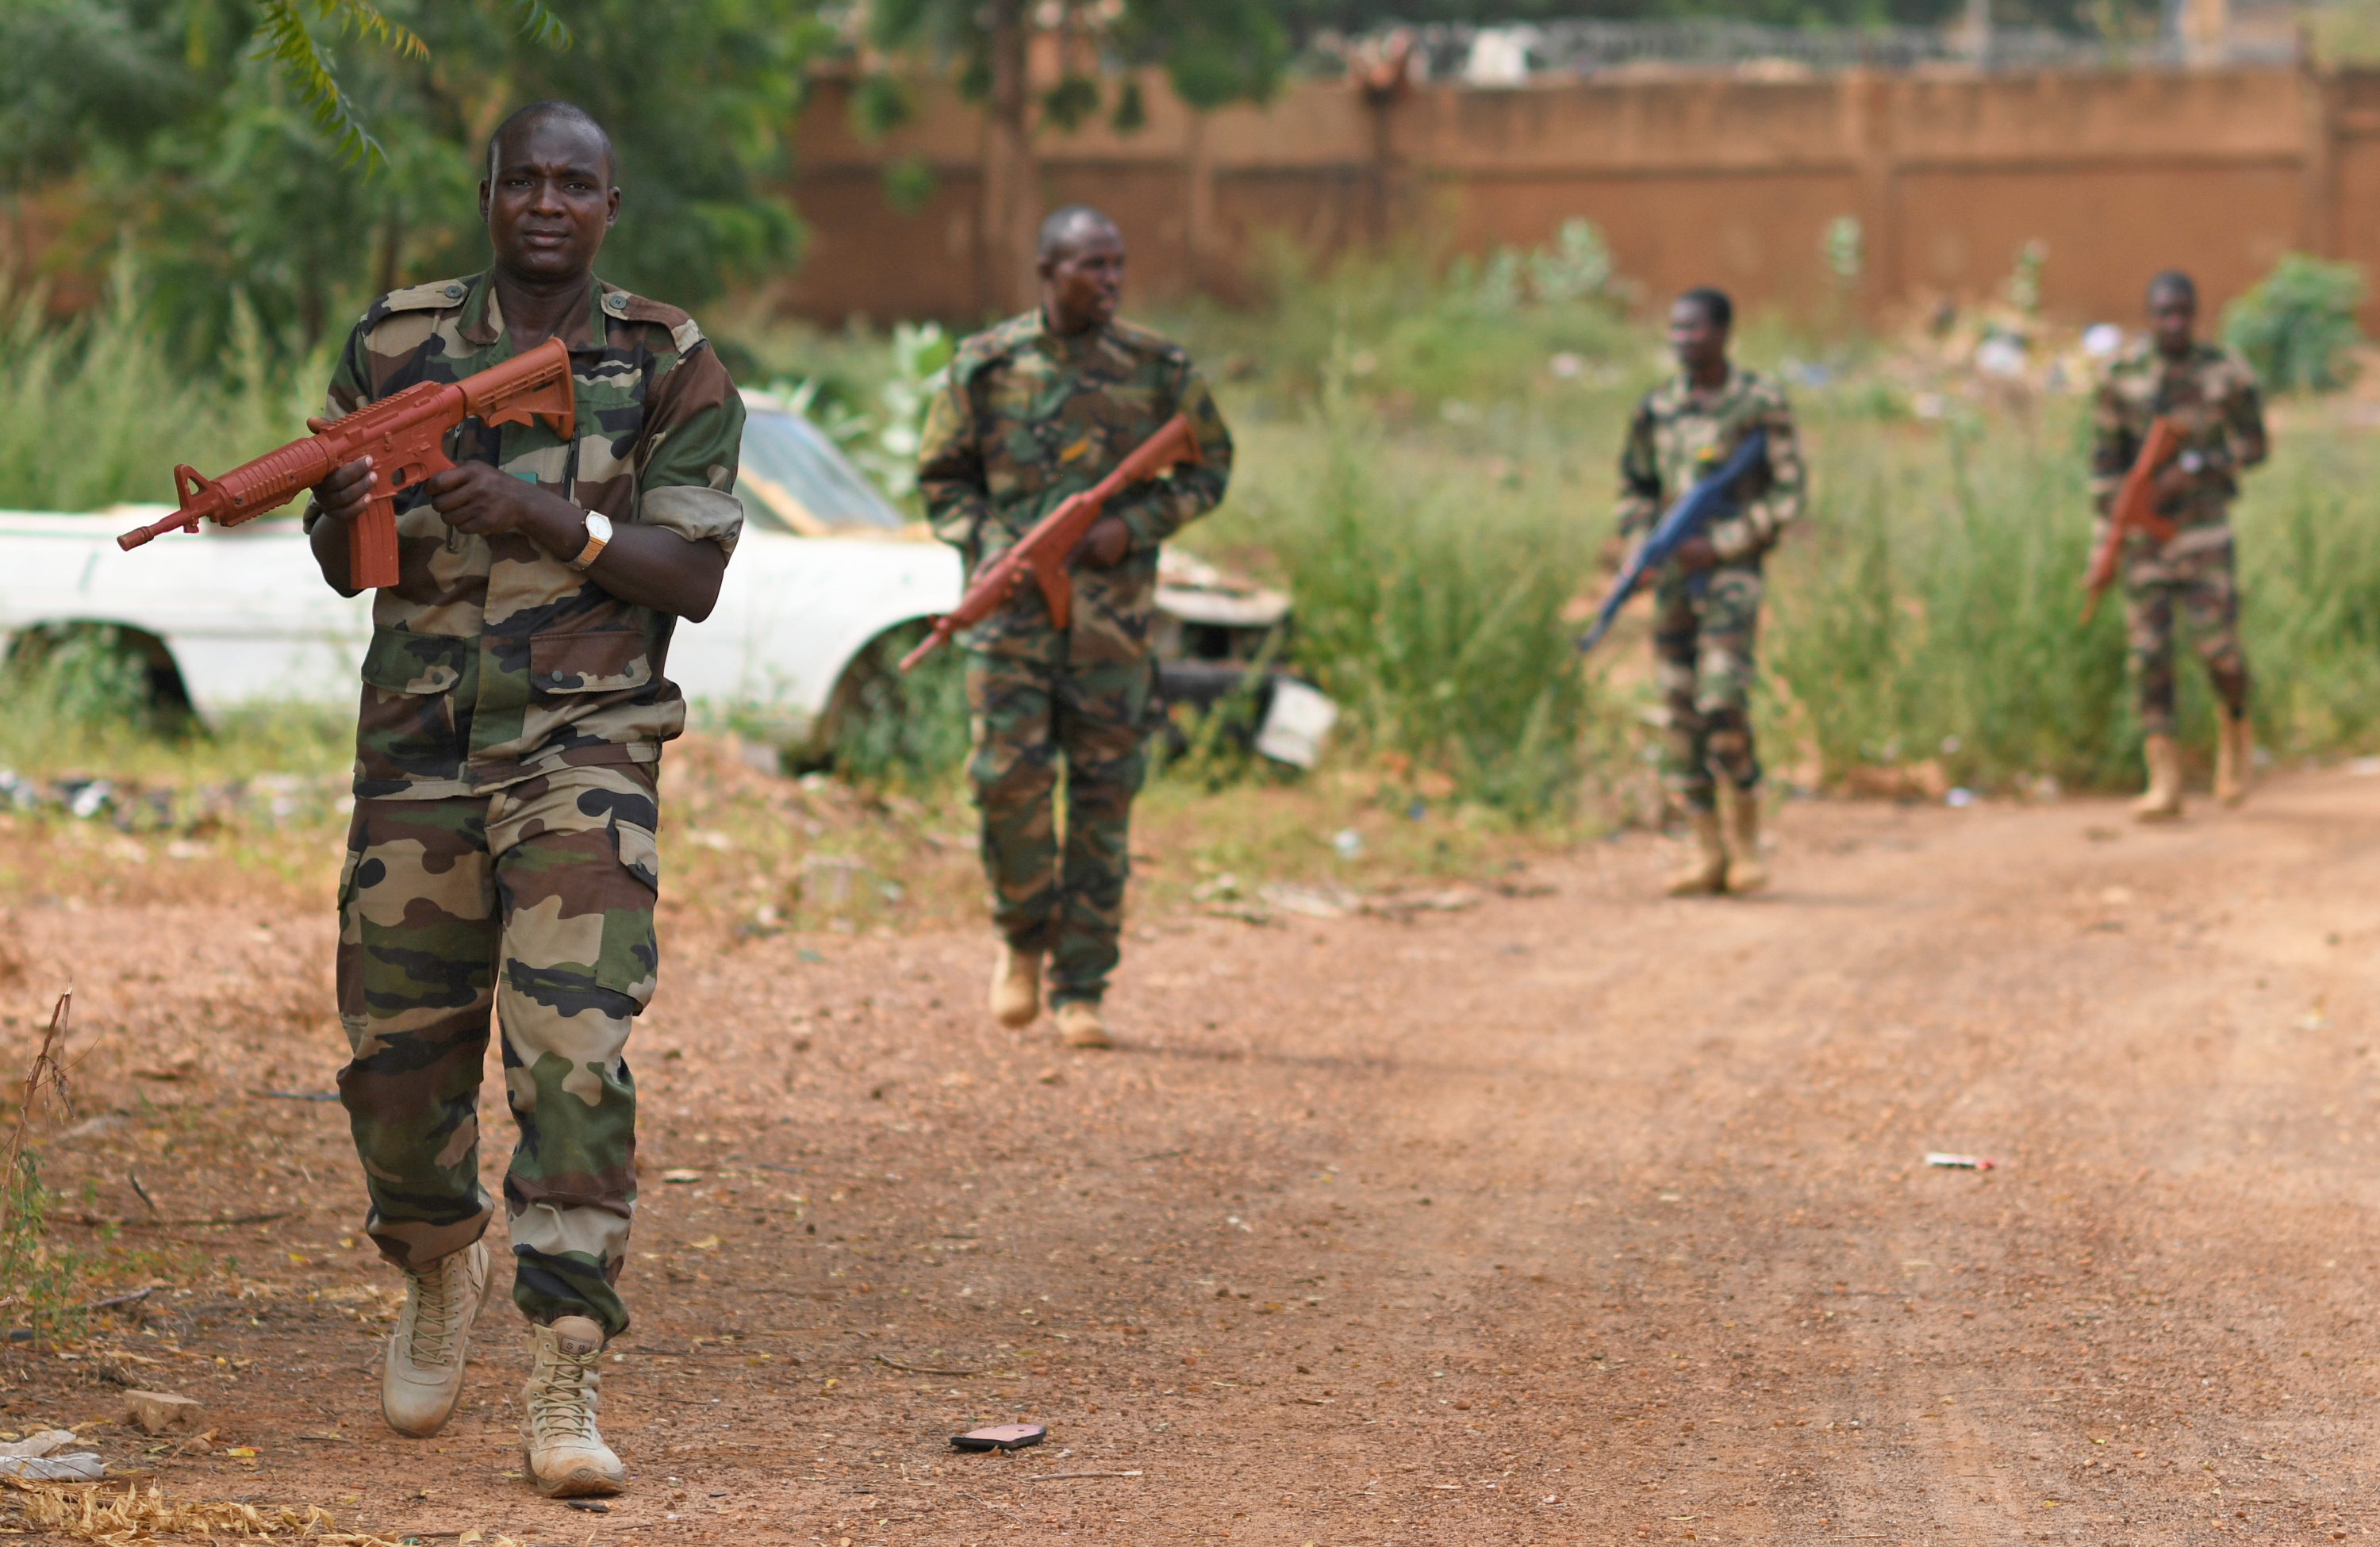 Forces Armées Nigeriennes (Nigerien Armed Forces) Genie Unit members search for improvised explosive devices during an IED Awareness Course taught by members of the 768th Expeditionary Air Base Squadron Explosive Ordnance Disposal team and Security Forces Air Advisors in Niamey, Niger, Oct. 11, 2019. The course is part of a curriculum spanning several months designed to improve the FAN's effectiveness and survivability once they deploy to combat the violent extremist organizations in West Africa. (U.S. Air Force photo by Staff Sgt. Alex Fox Echols III)